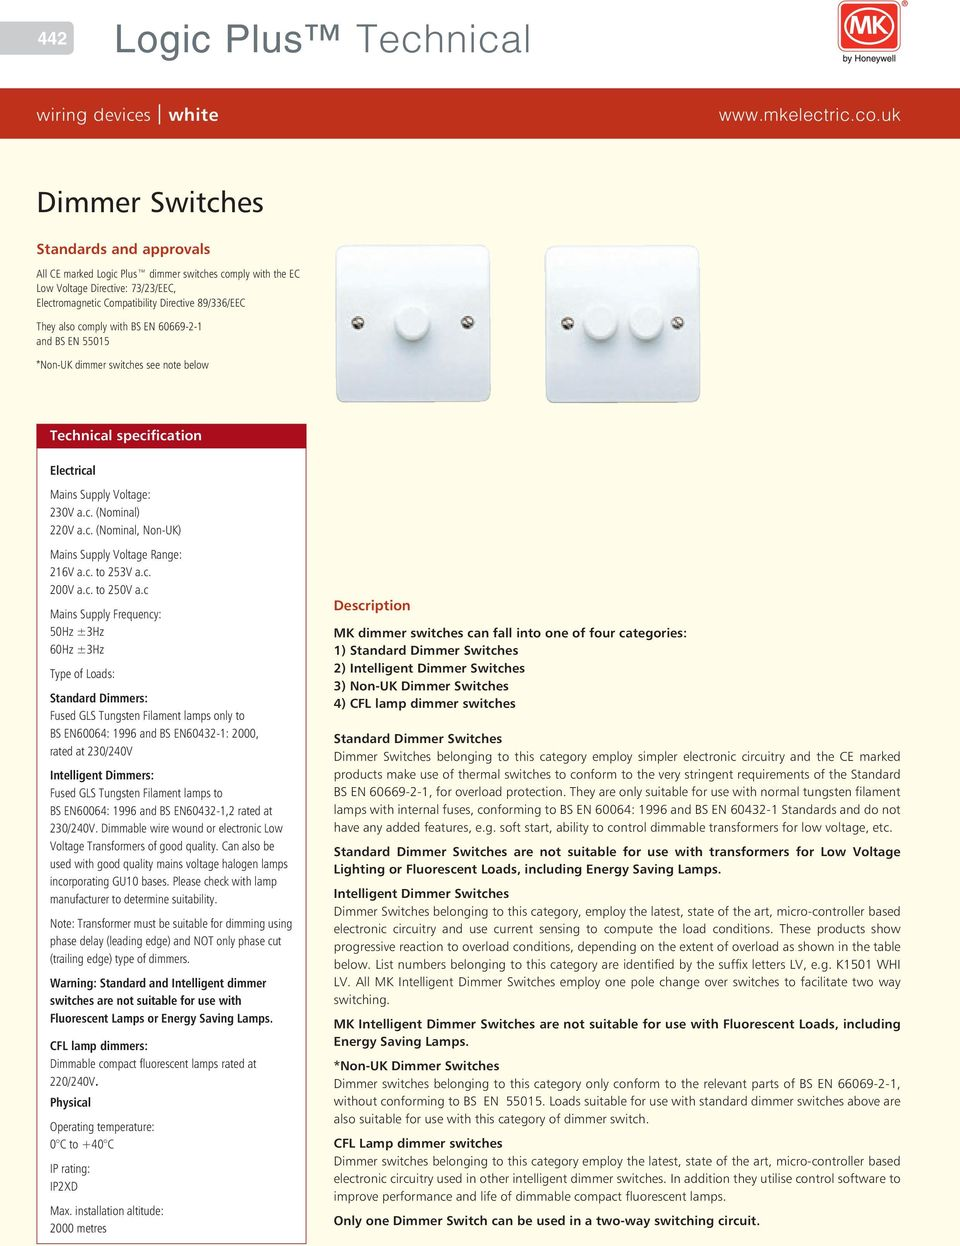 Logic Plus Technical Switchsocket Outlets White Wiring Devices Two Way Switching Circuit E 0 On Uk Dimmer Switches See Note Below Mains Supply Voltage 0v